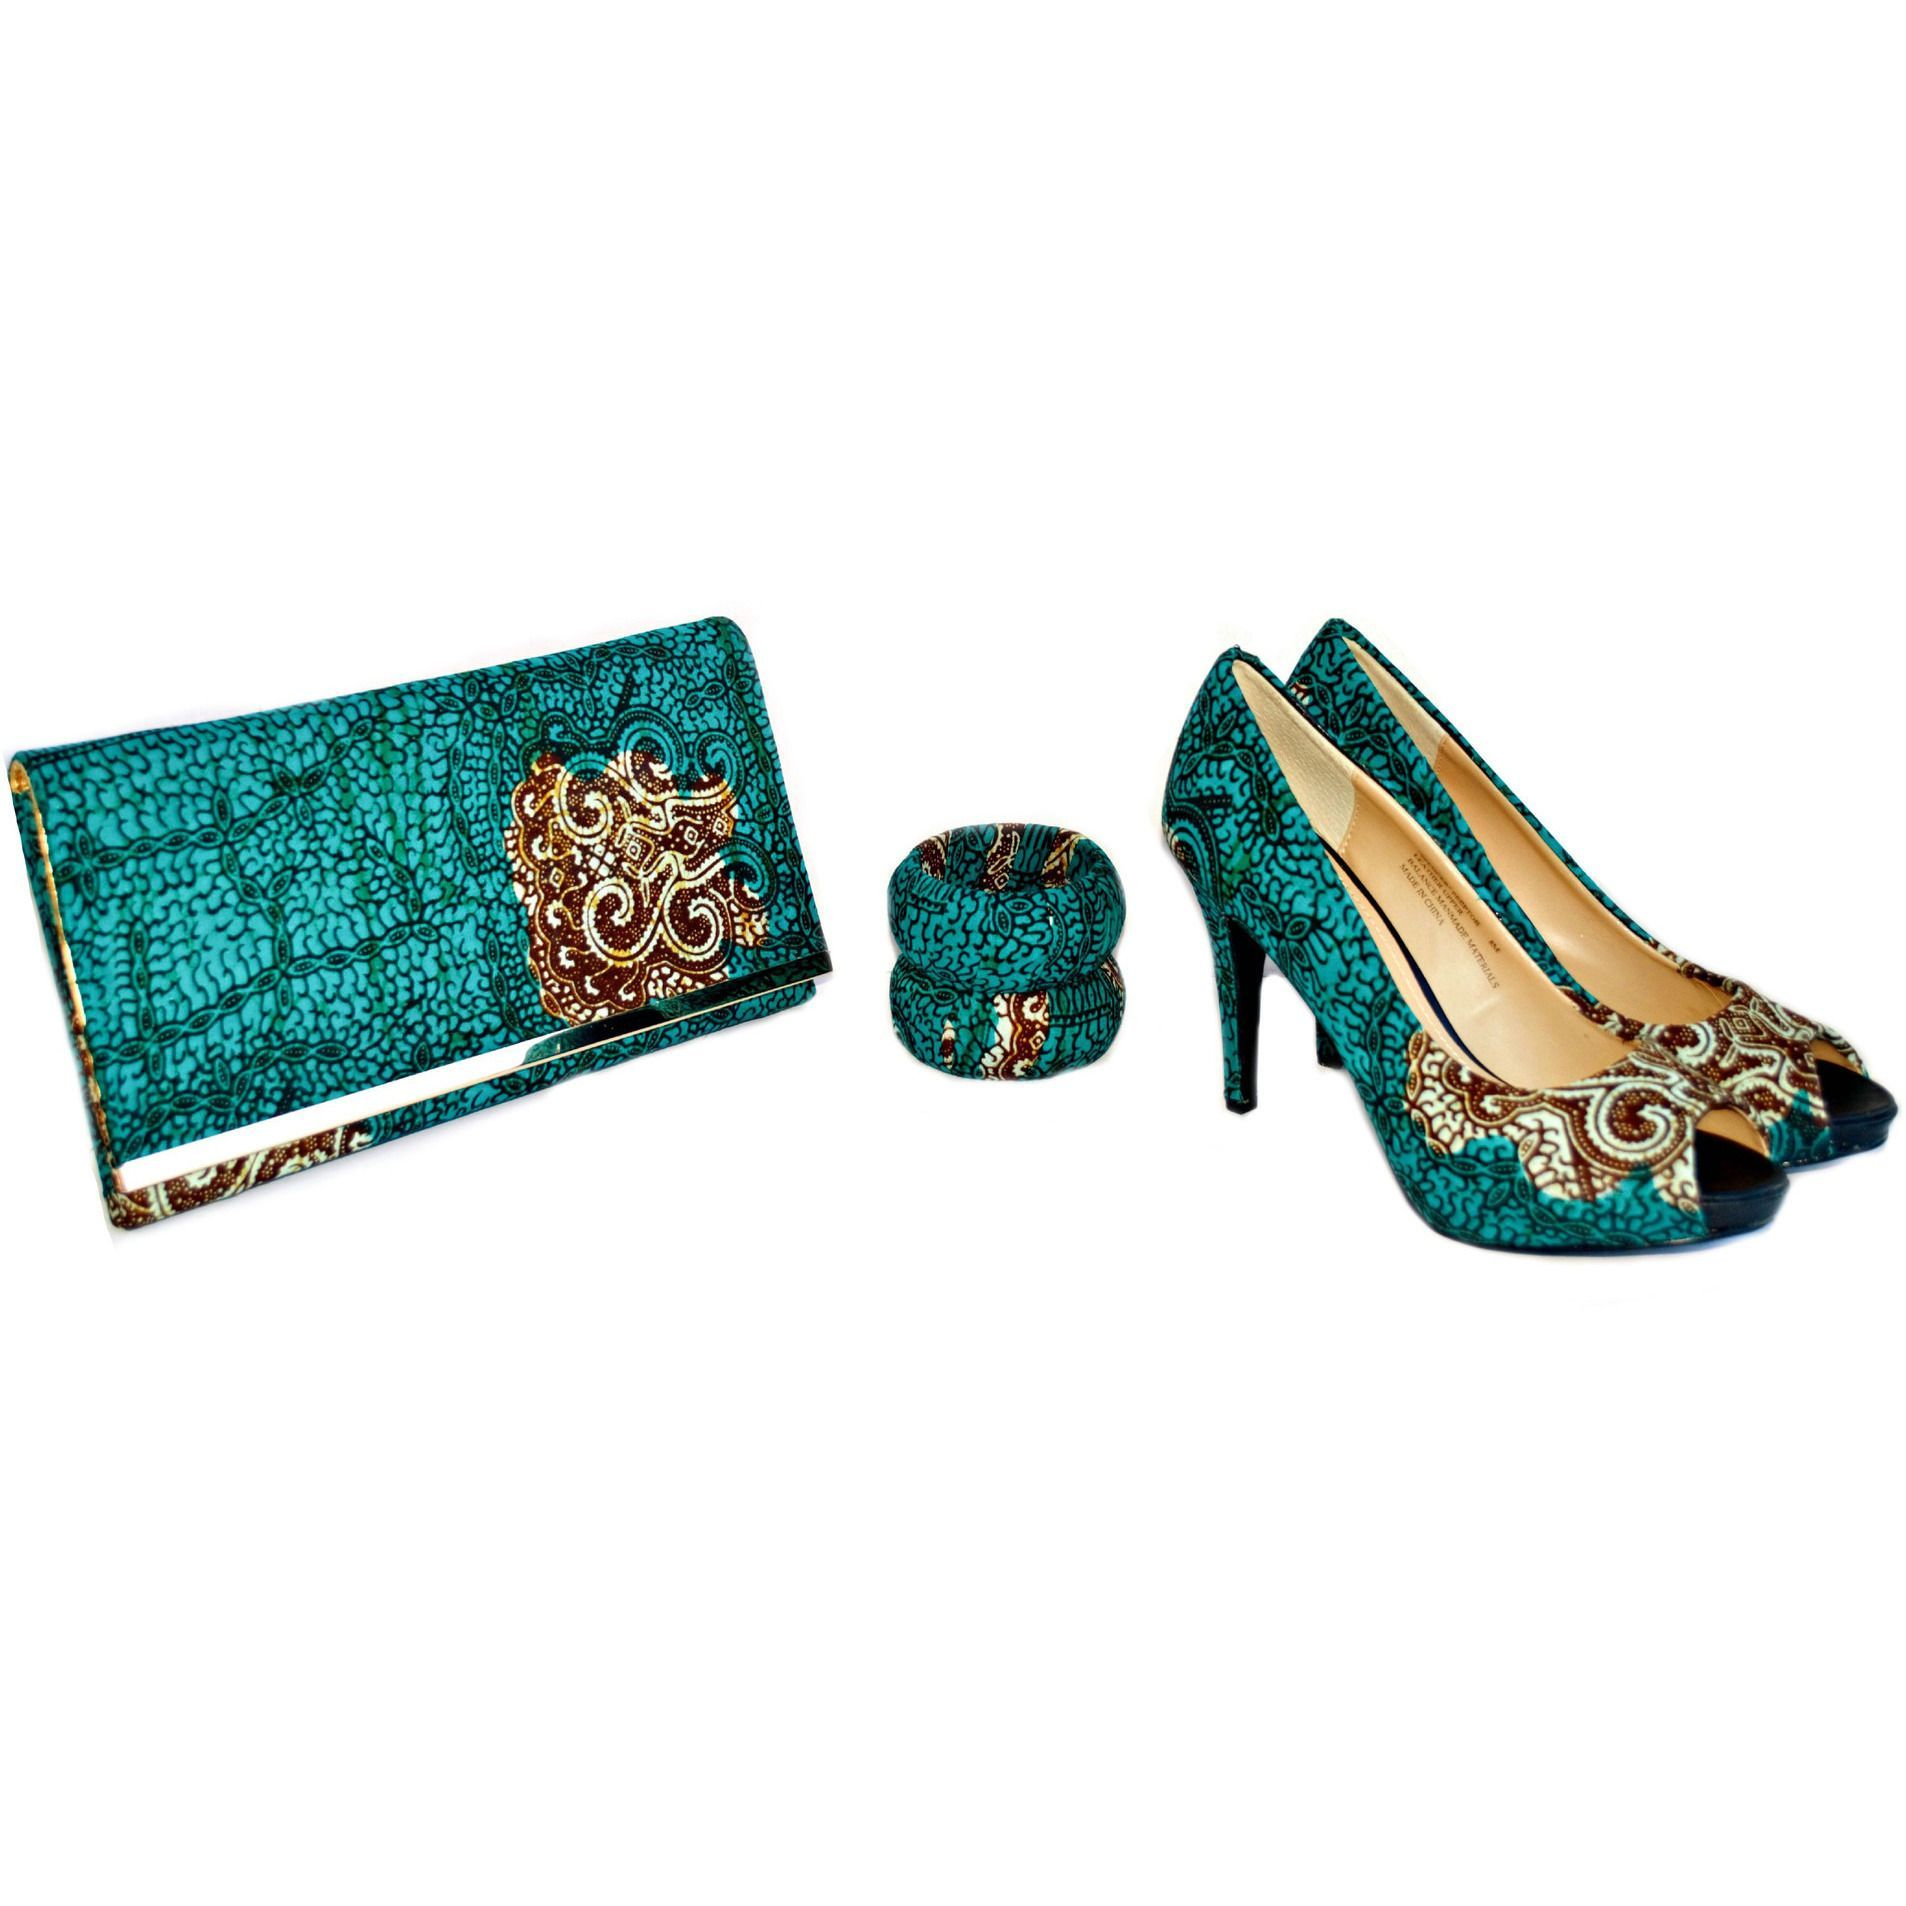 DELLY Peep Toes Shoes And Bag Set